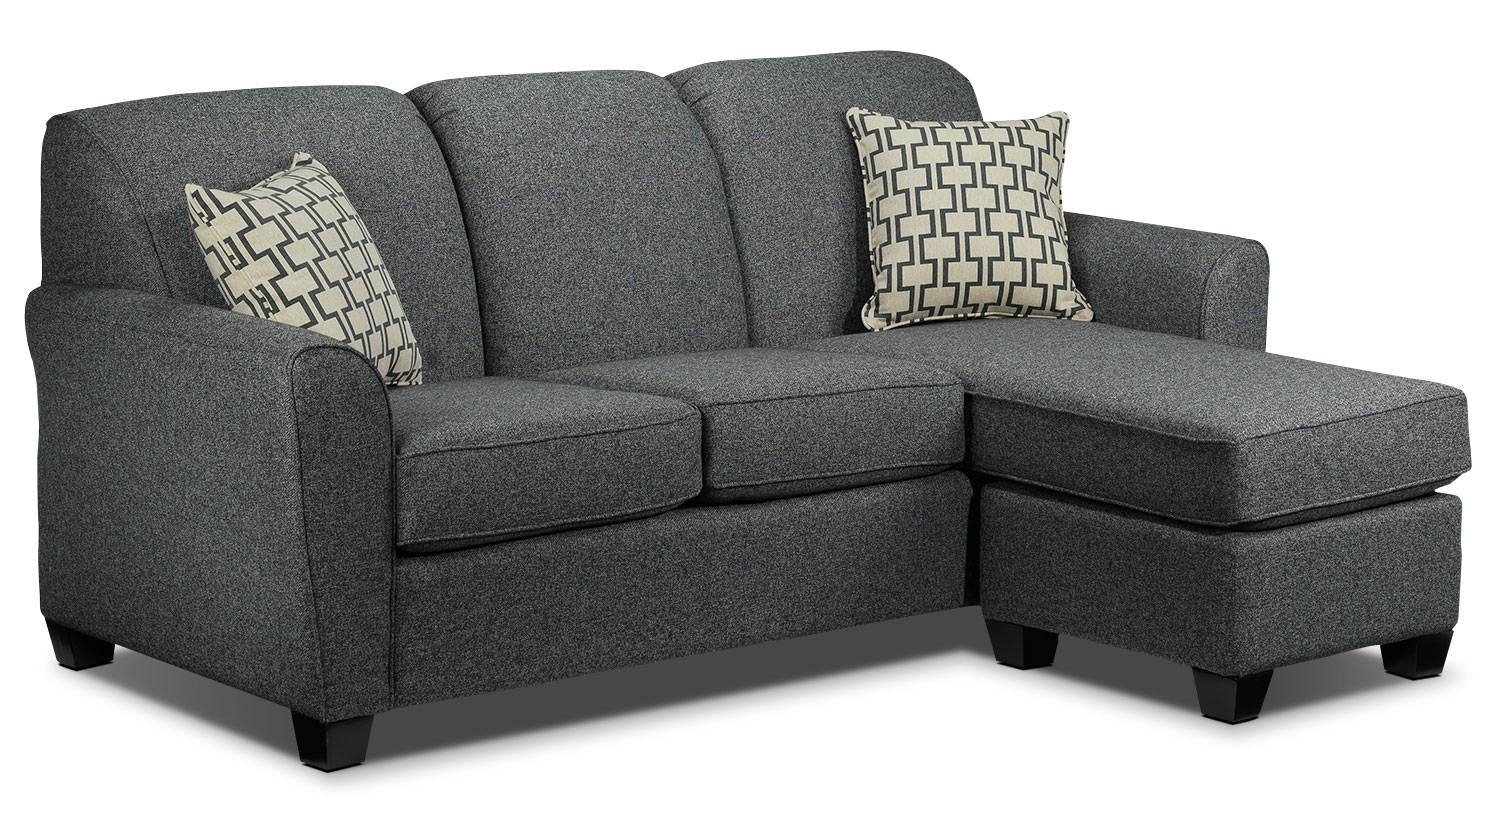 Ashby Chaise Sofa - Grey | Leon's within Chaise Sofa Chairs (Image 1 of 15)